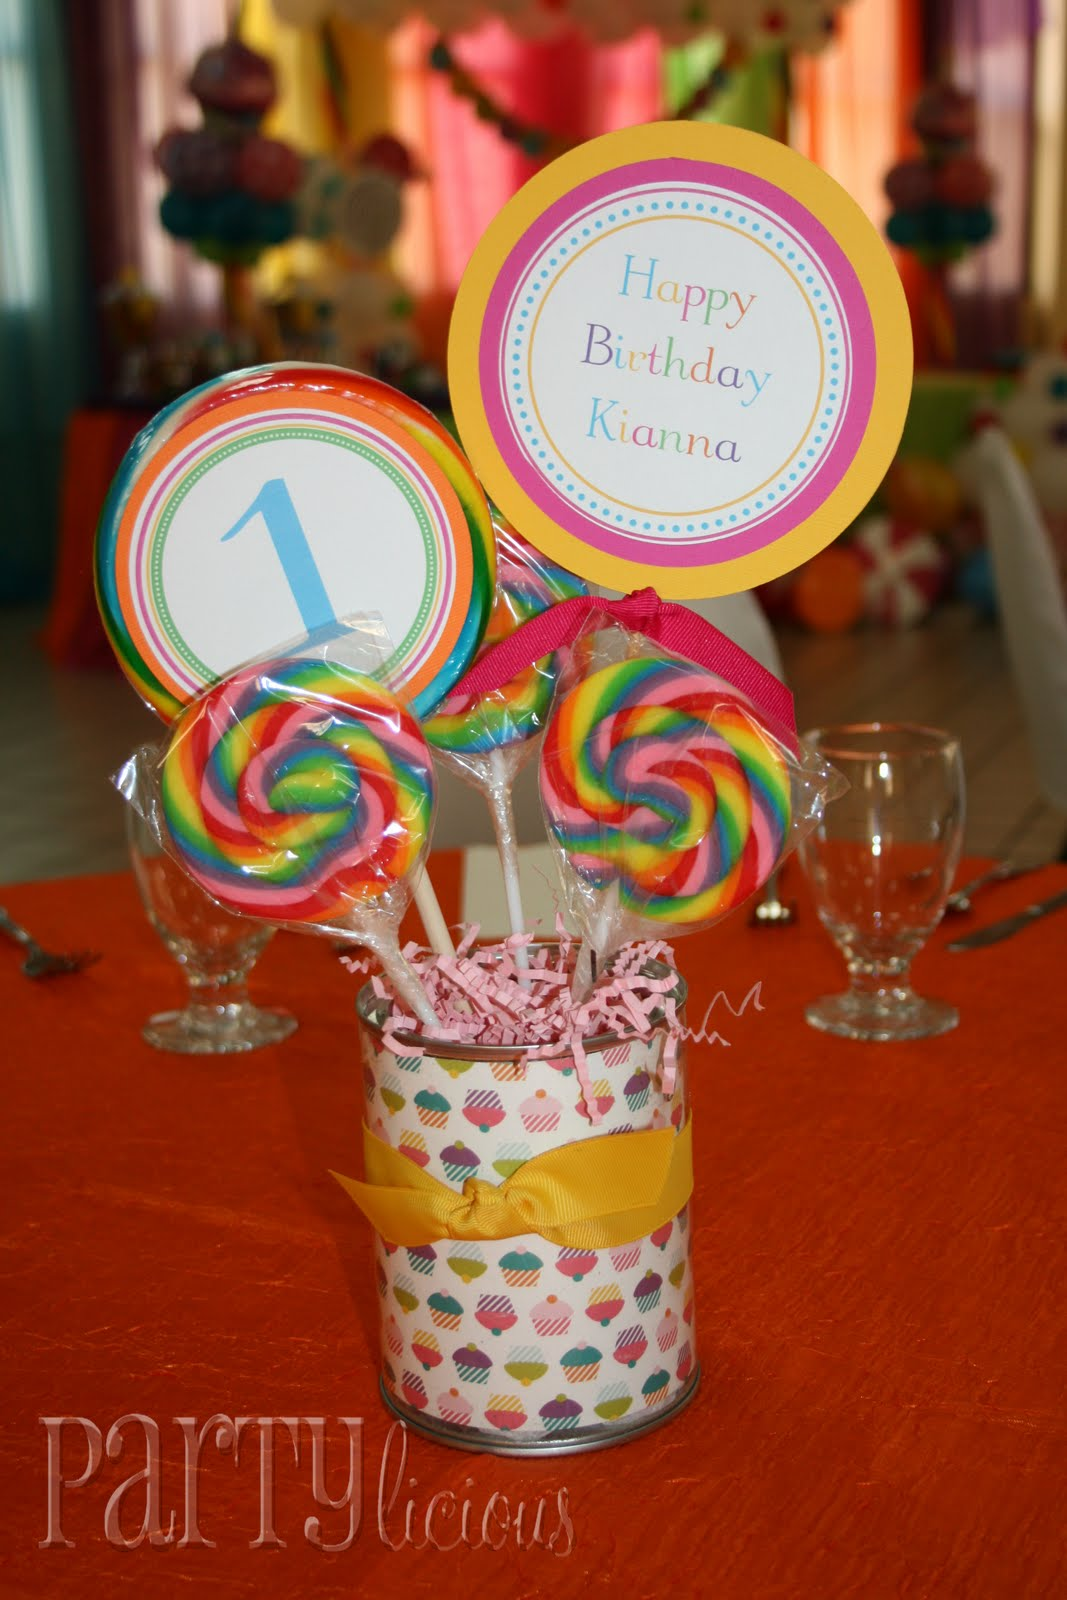 Partylicious events pr sweet st birthday candy cupcakes